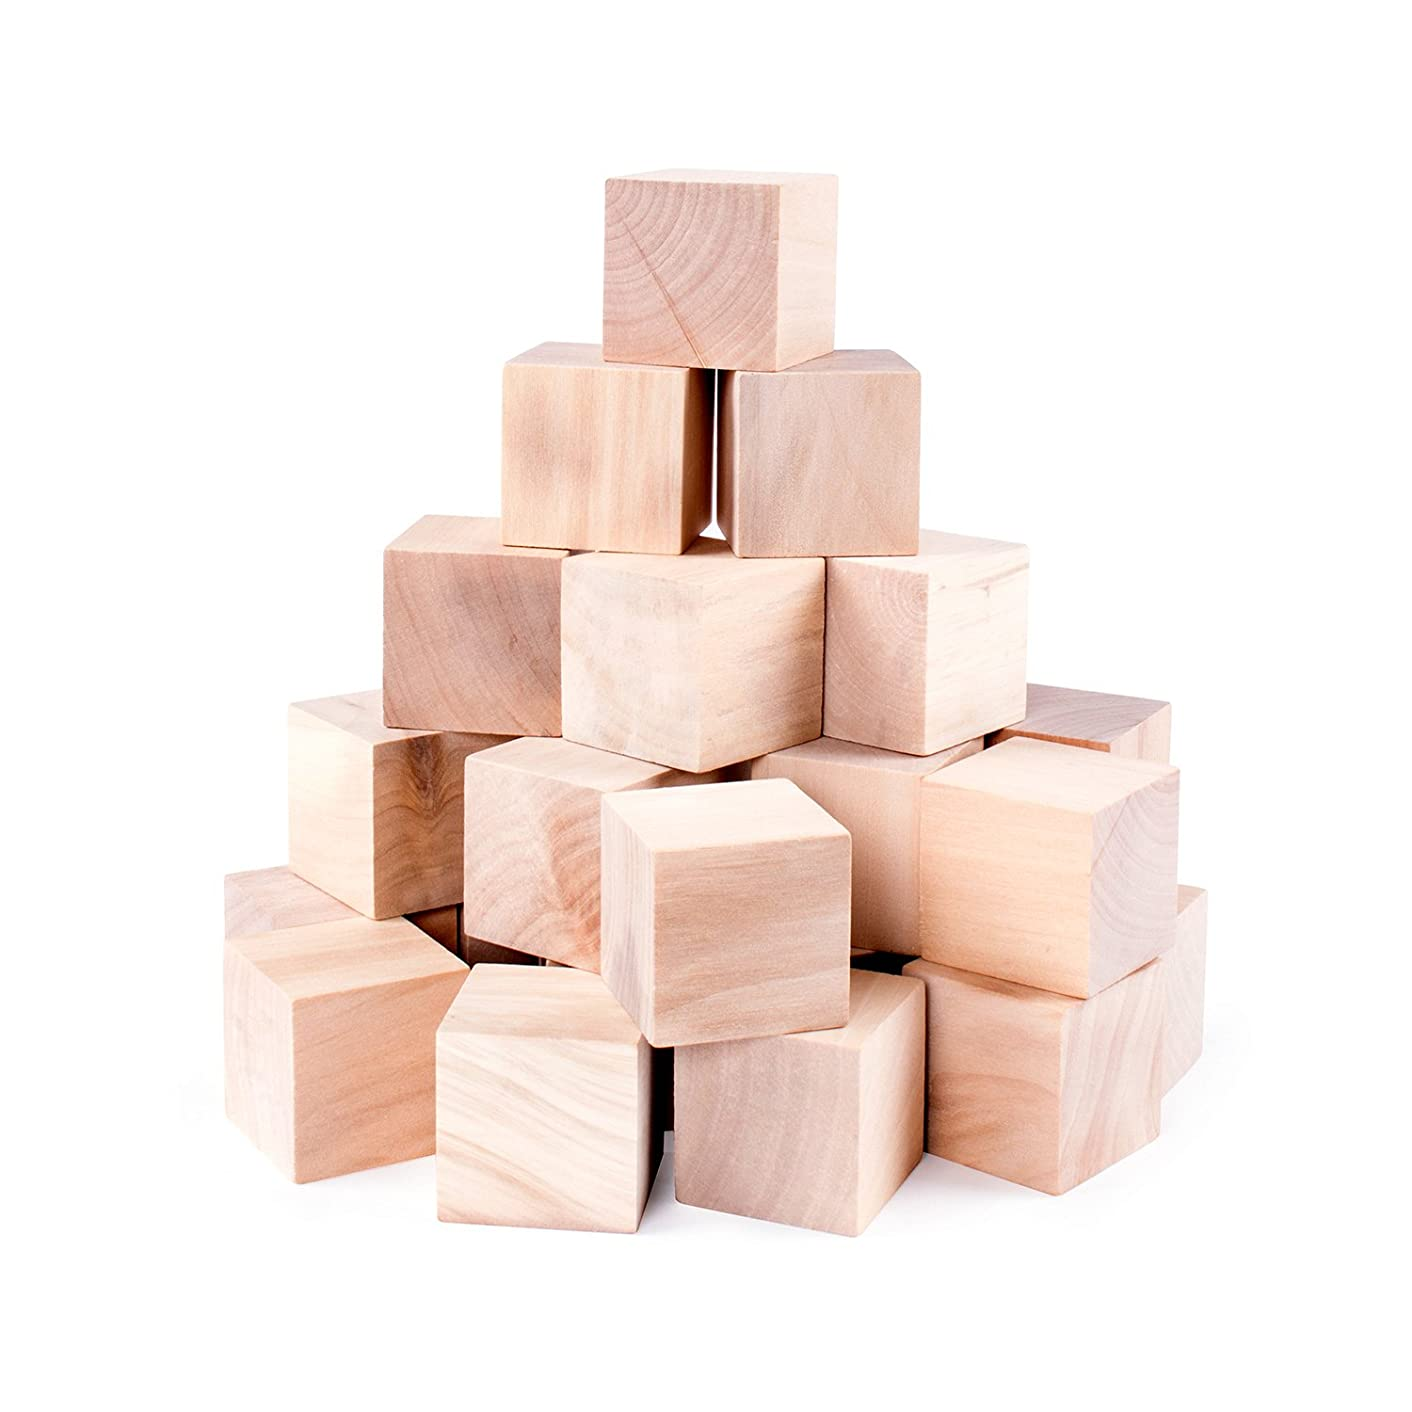 Unfinished Wood Blocks Cubes for Arts & Crafts Decorations Toy Projects, Mini Baby Size Puzzle Making Set (24 Pieces)